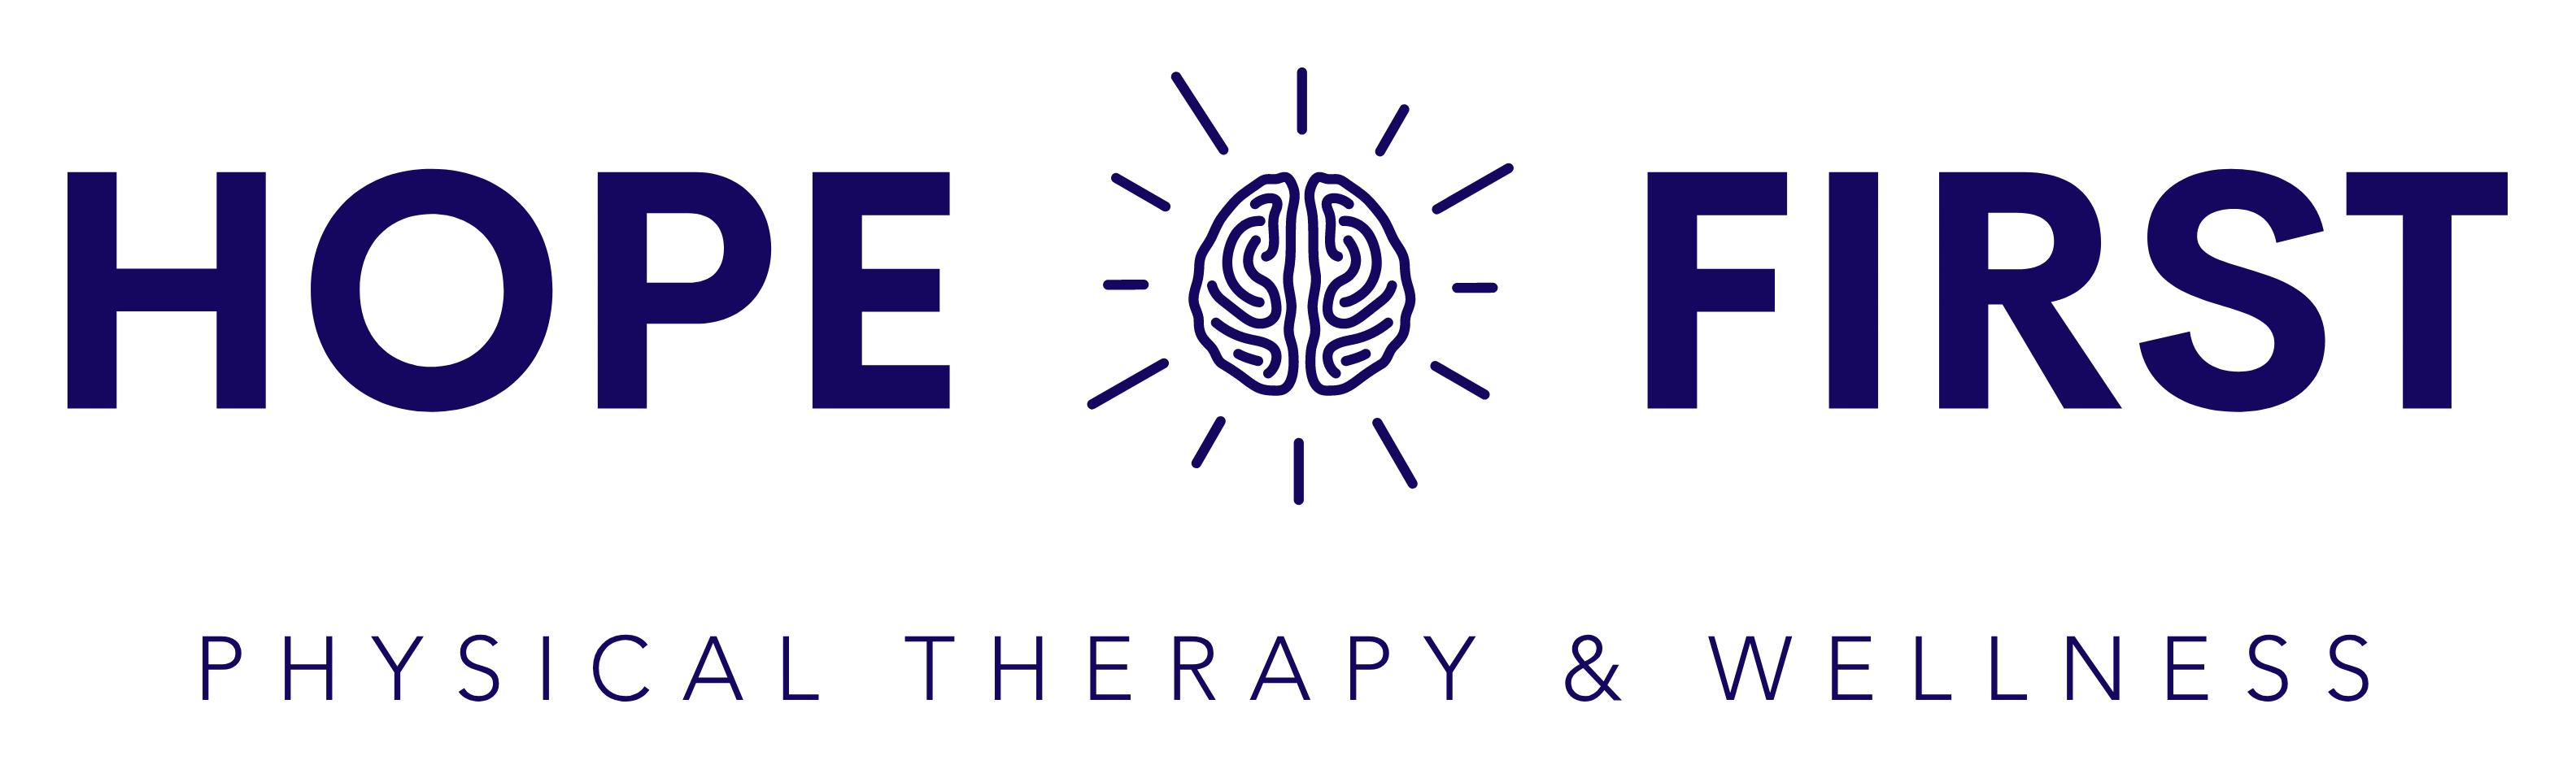 Hope First Physical Therapy and Wellness Logo